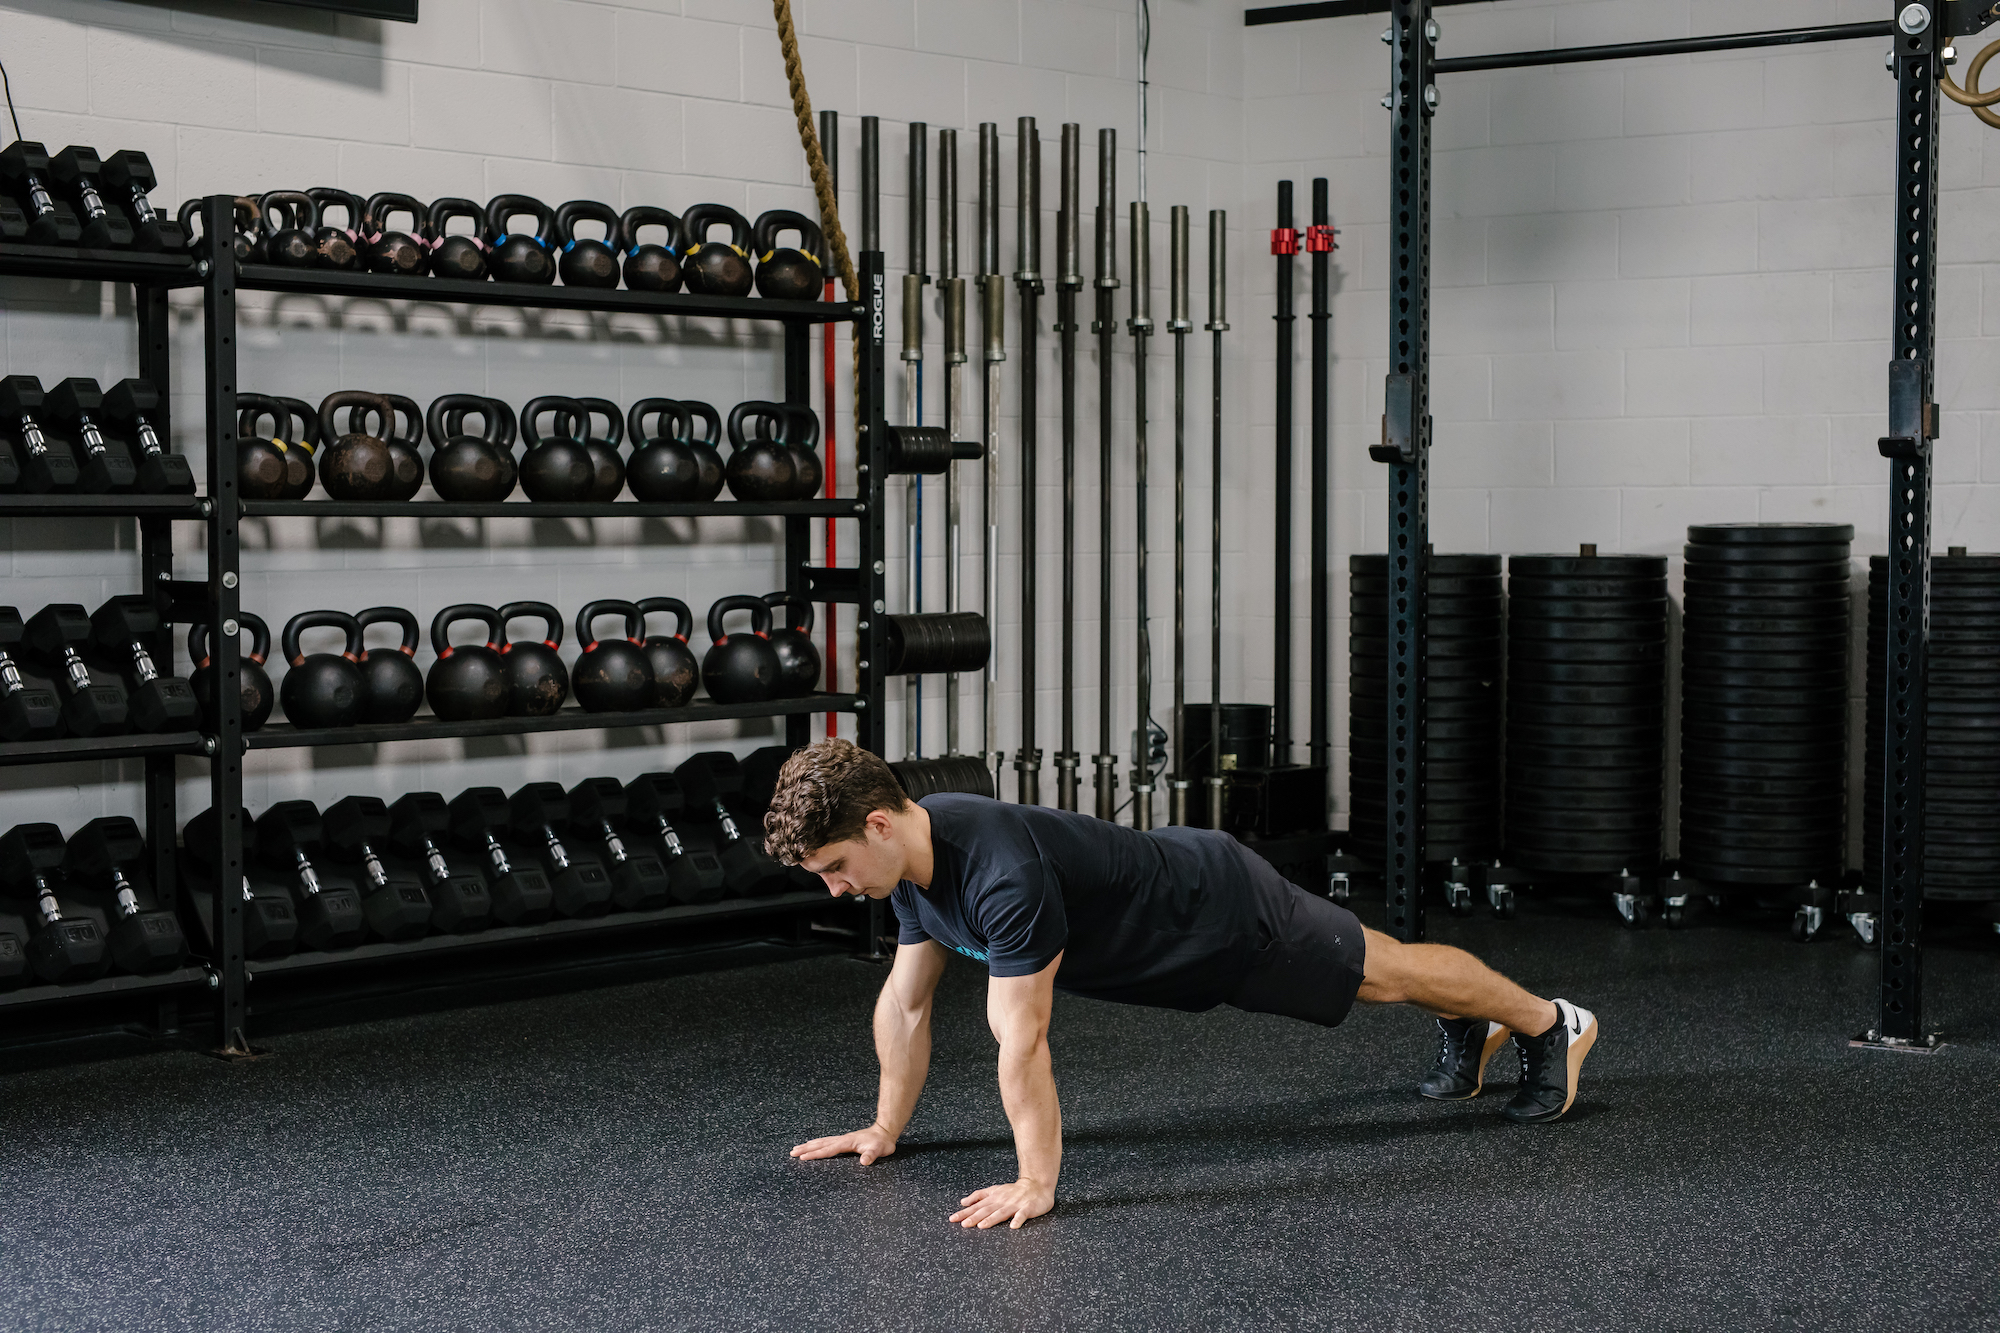 Points of Performance: The Push-Up